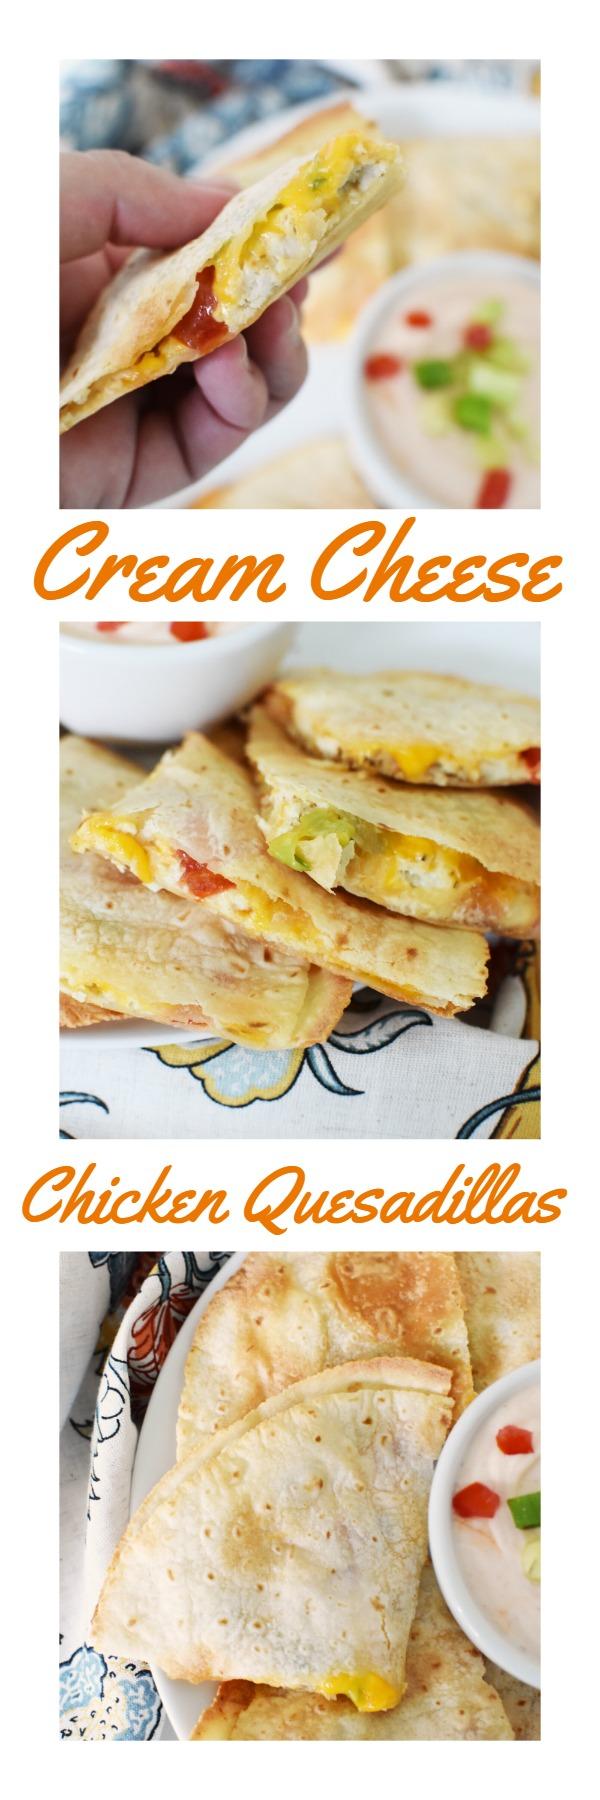 Cream Cheese Chicken Quesadillas